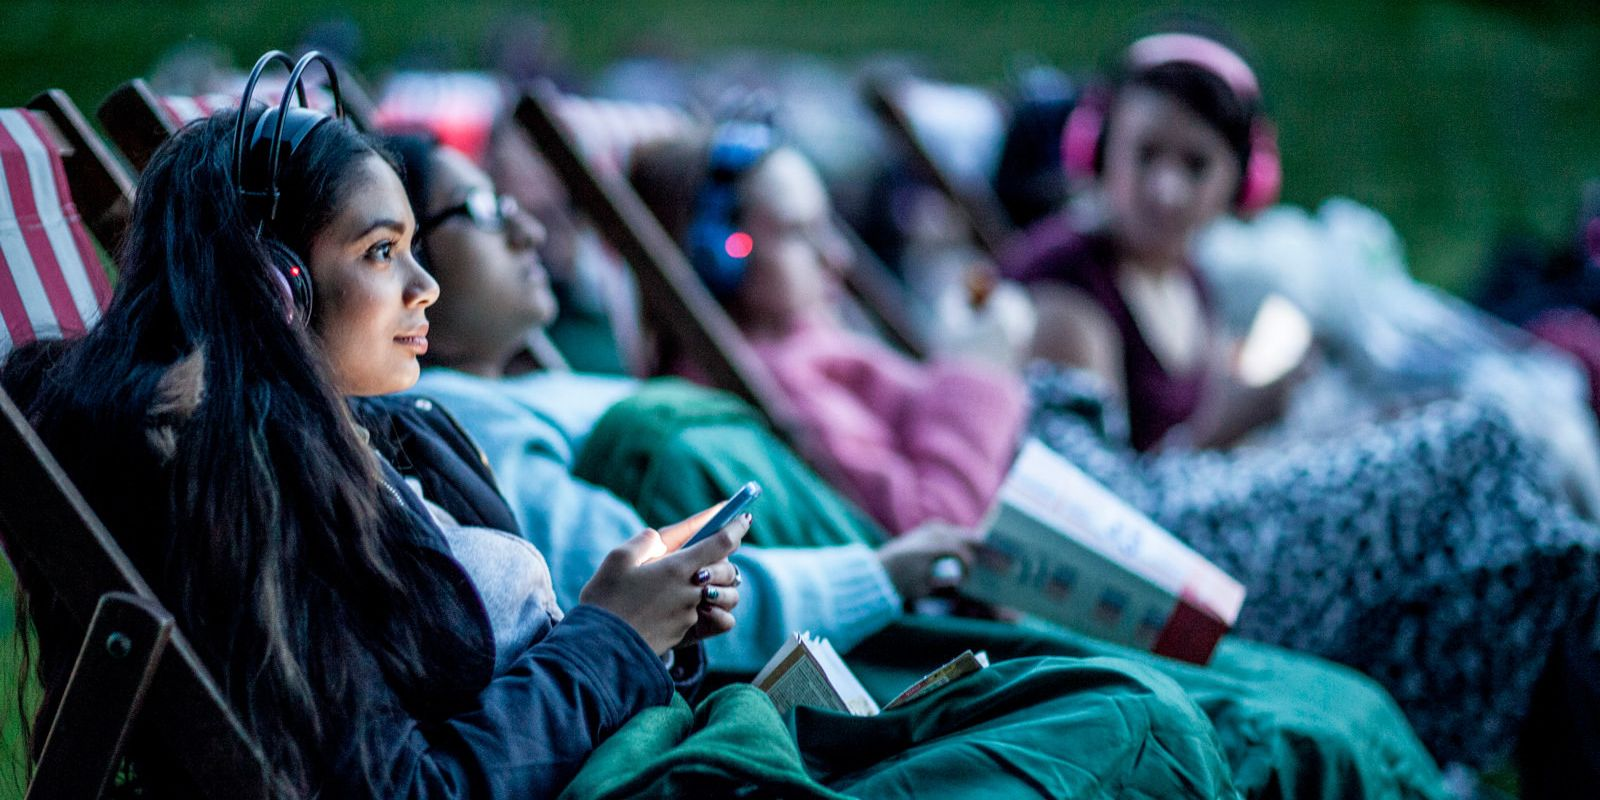 Outdoor cinema event at Croxley Park